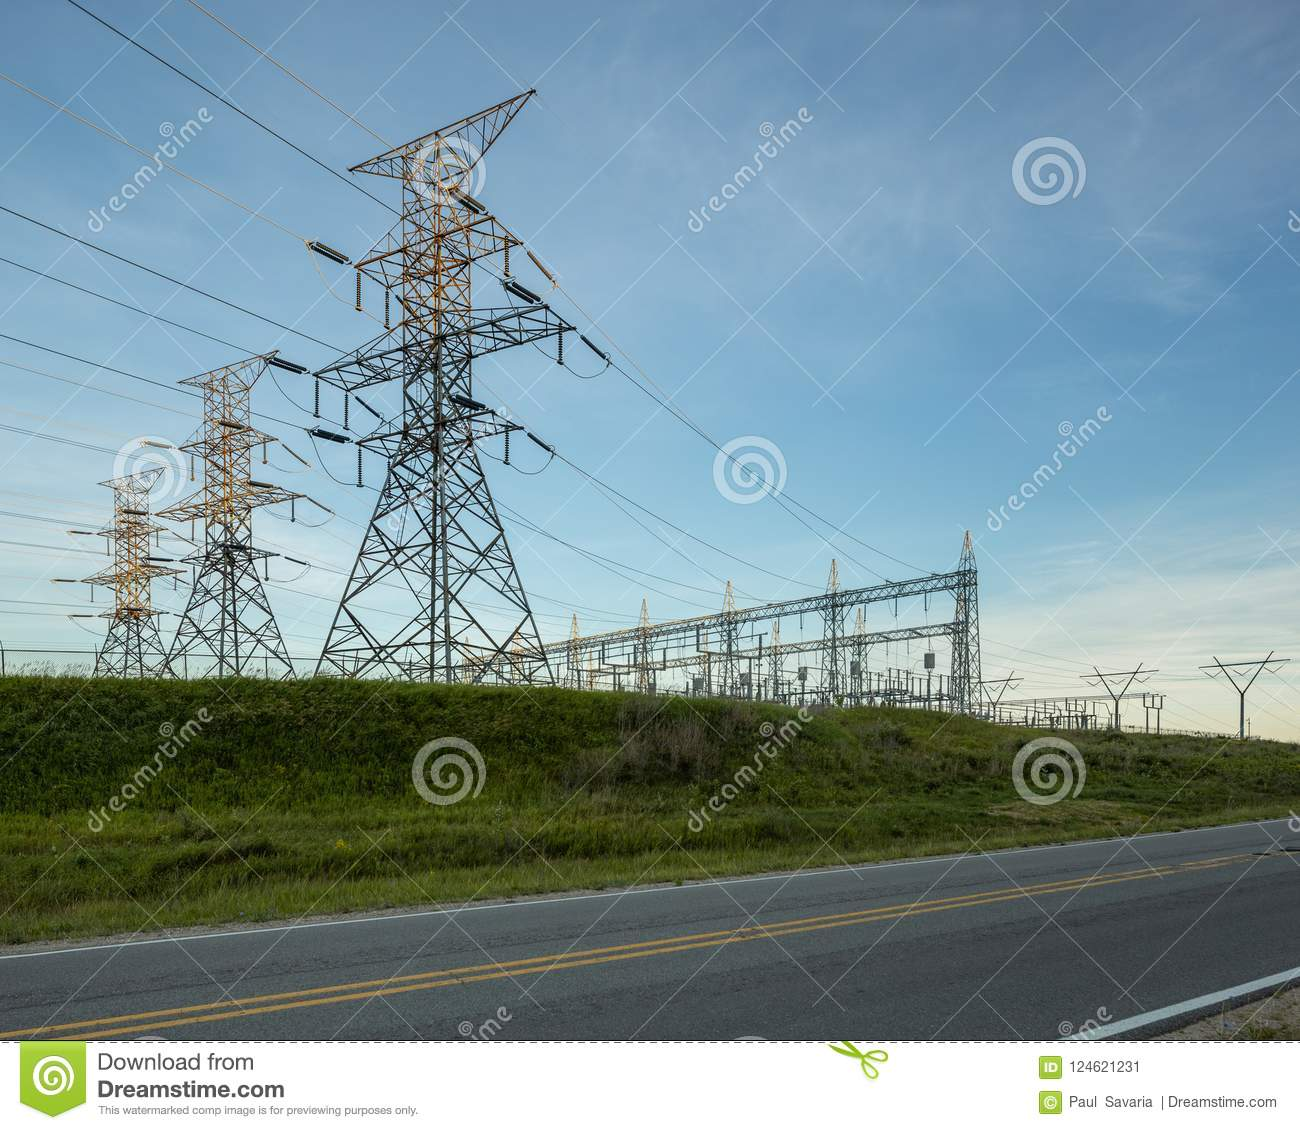 Power Electrical Lines From Hydro Electric Plant By Road And Fields What Is A